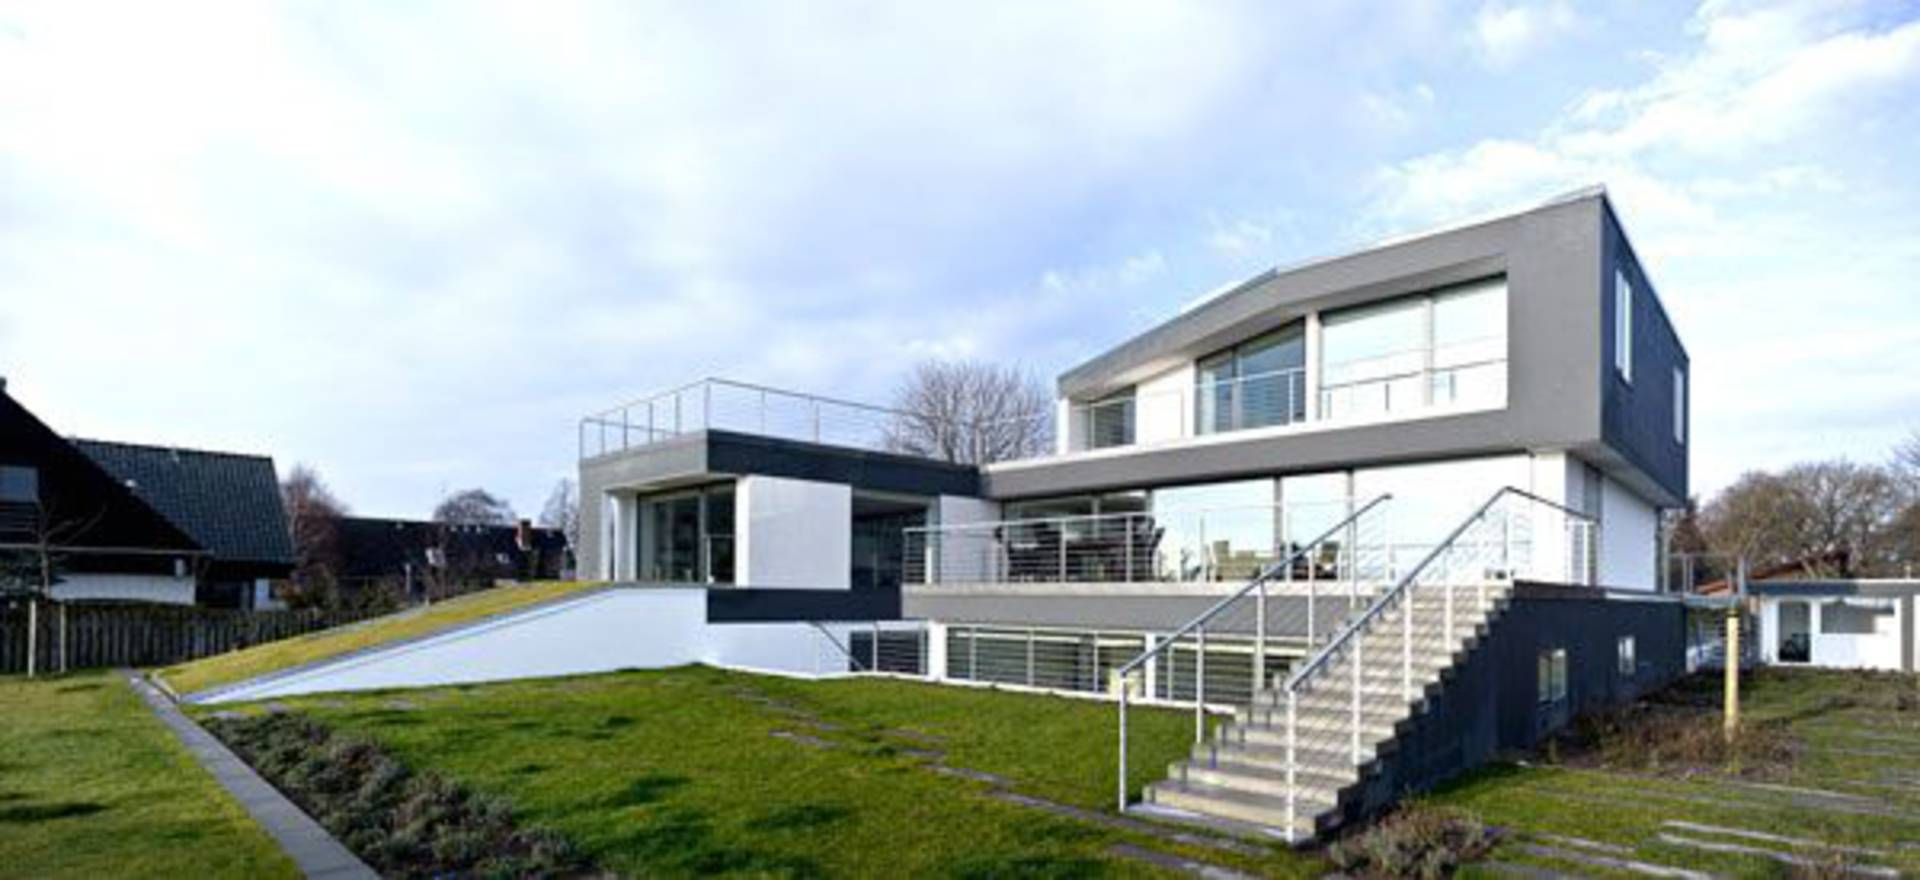 Beautiful house with large indoor pool in denmark home for Very beautiful house